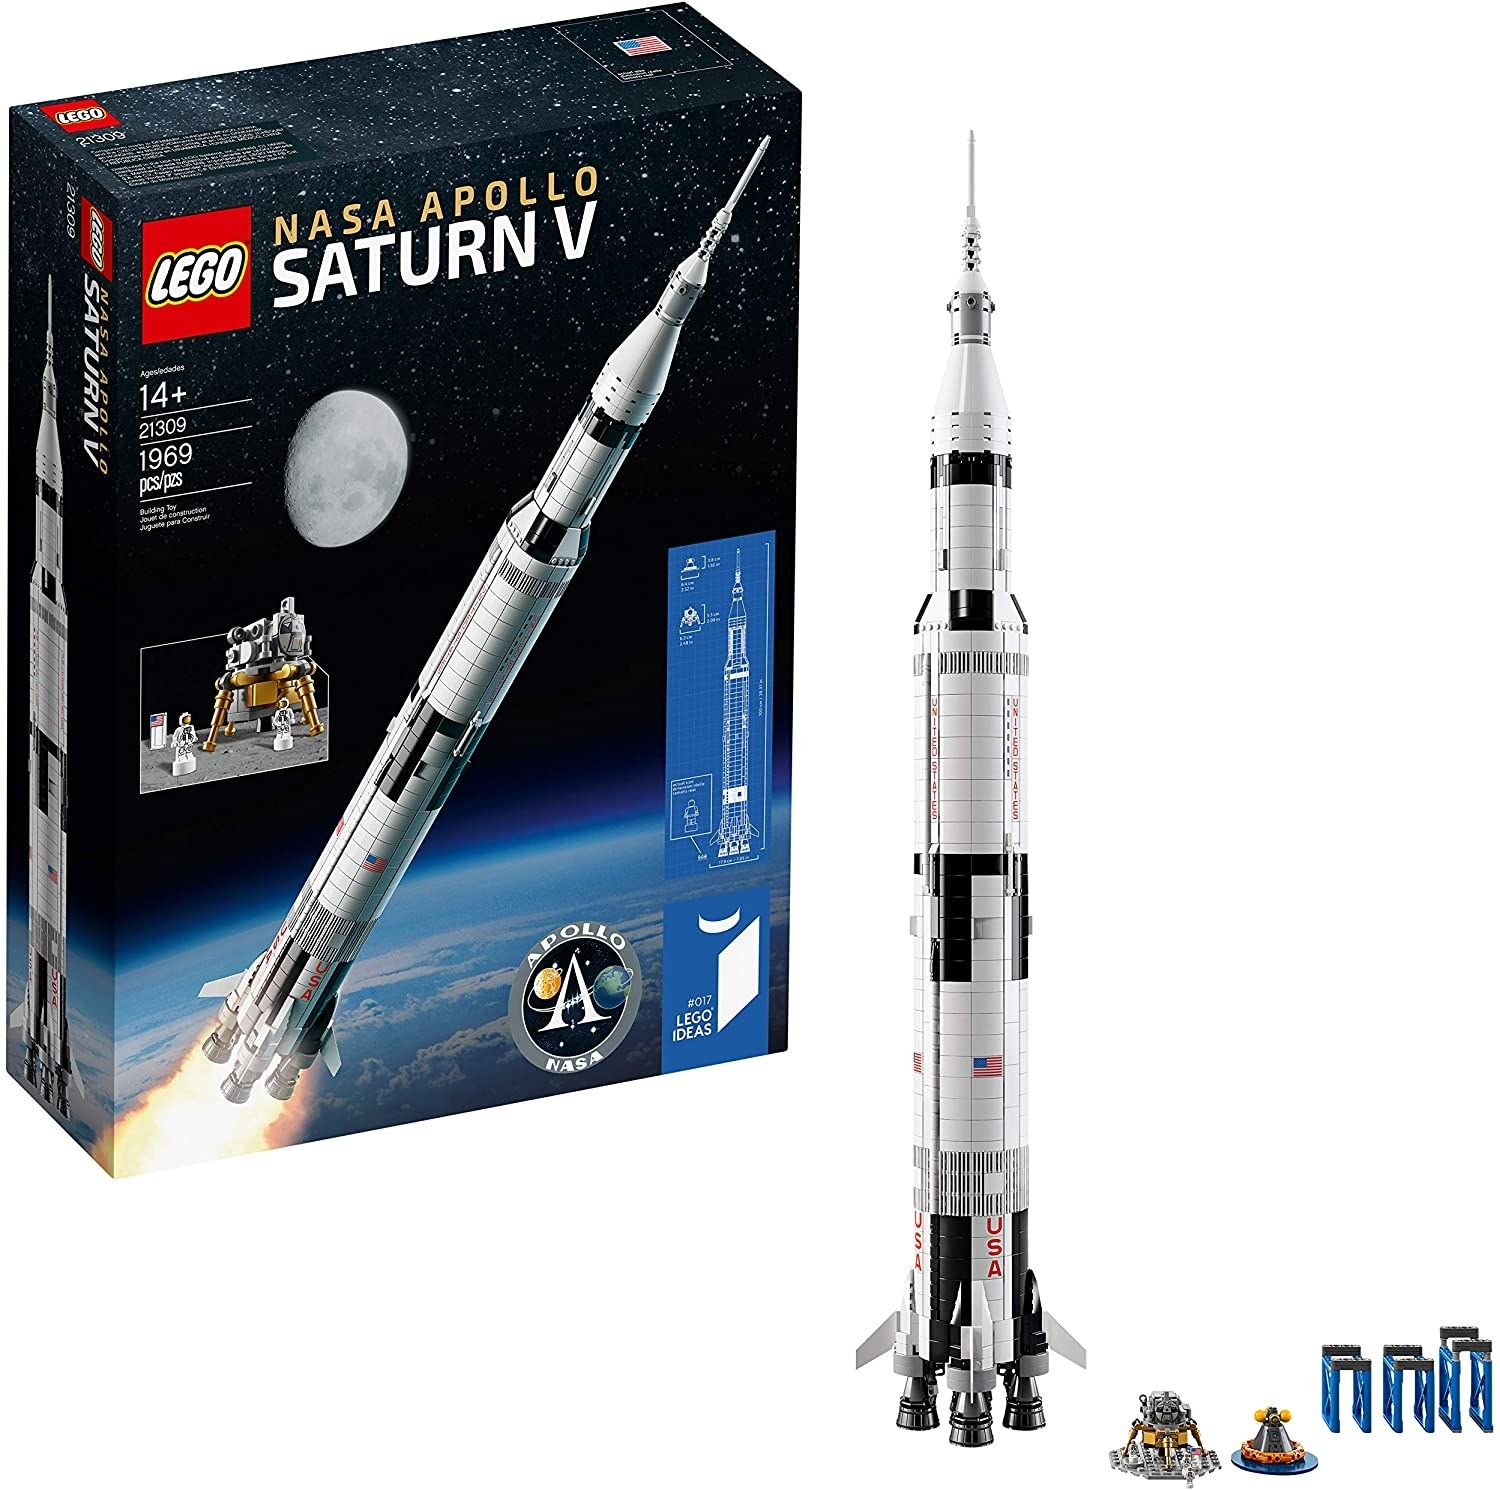 the box showing the rocket and the rocket built next to it